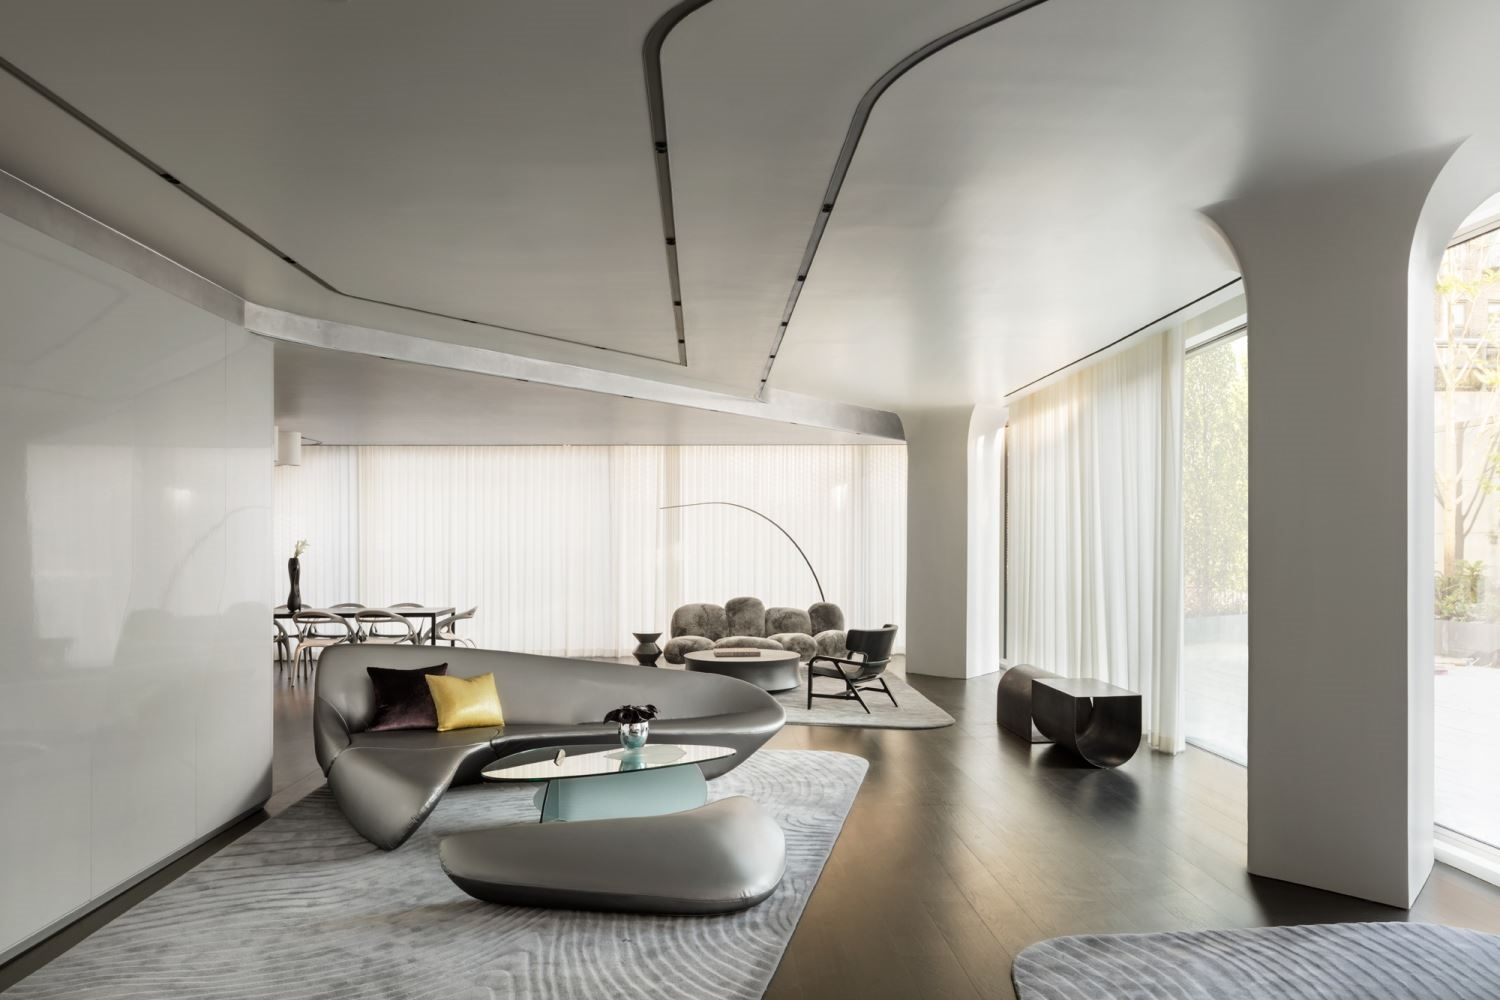 Zaha Hadid Penthouse, 520 West 28th Street, Chelsea, New York | The Reservable Lounge |Corcoran | Finest Residences